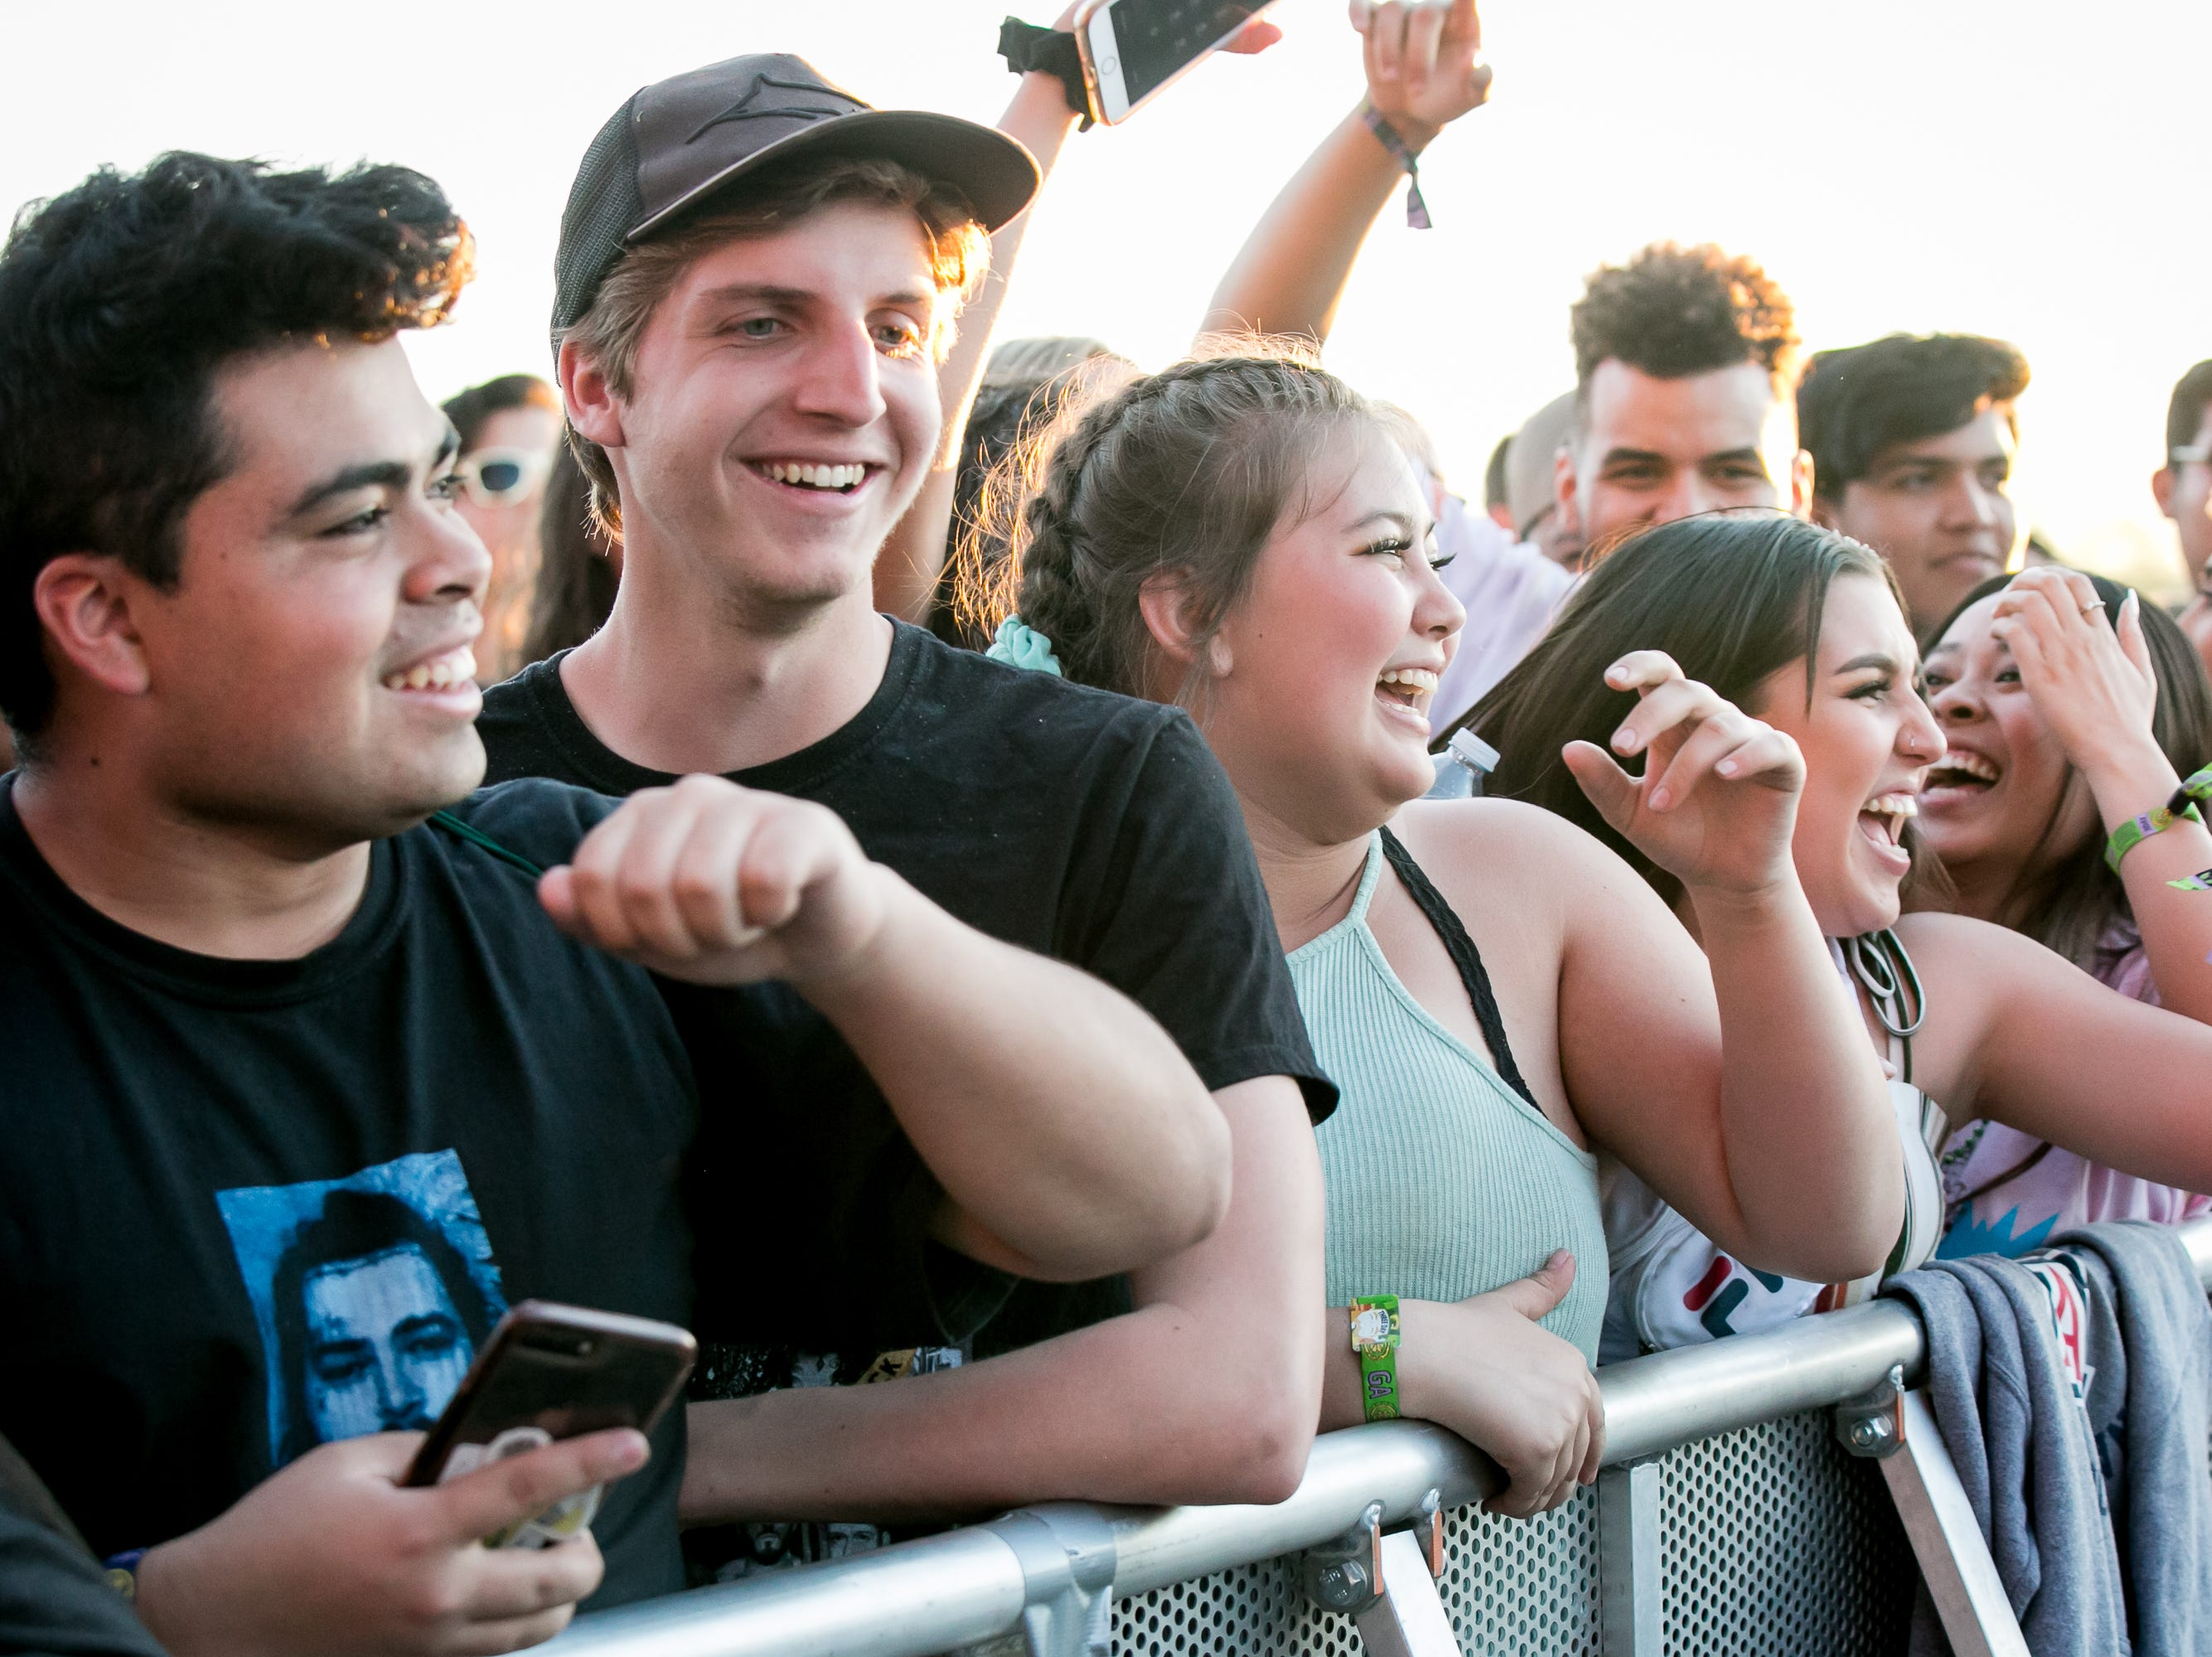 Everyone was in good spirits before Lil Pump's set at Pot of Gold Music Festival on Sunday, March 17, 2019.